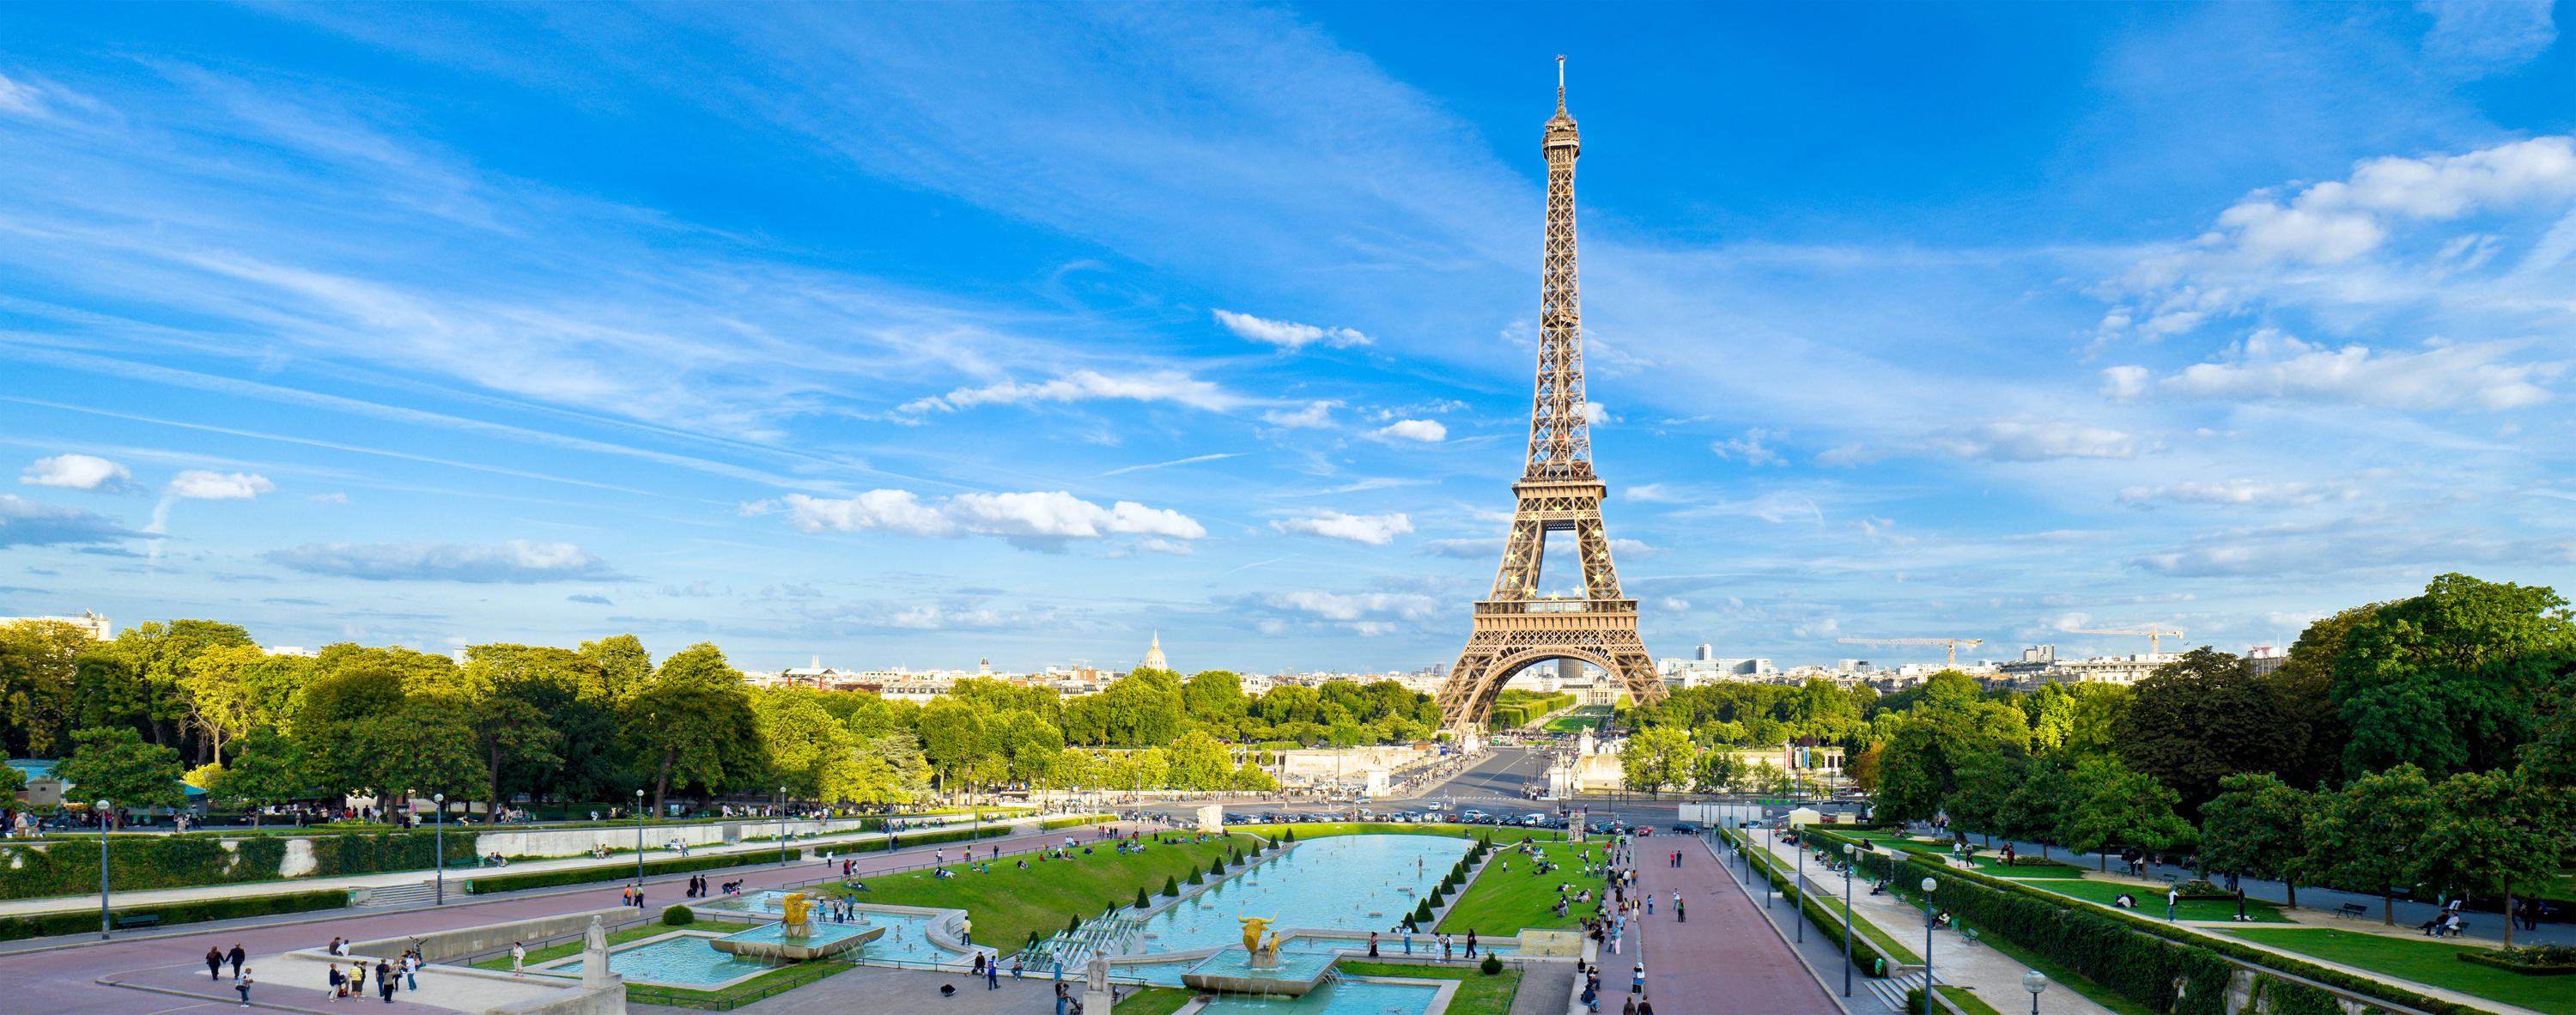 europe-itinerary-month-trip-wallpaper-wp3605400